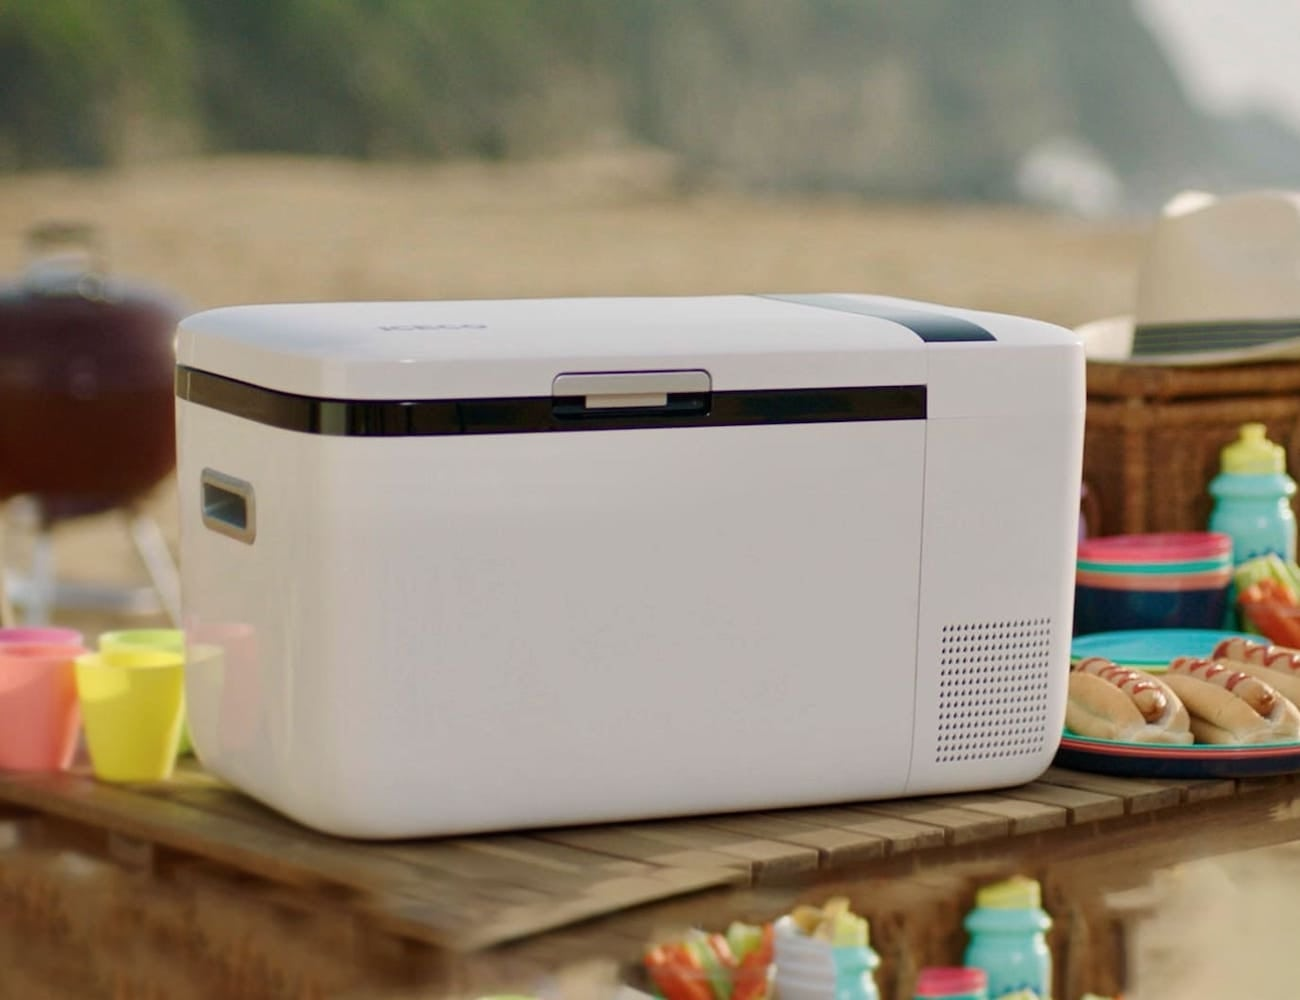 iFreezer Portable Smart Freezer comes with two storage spaces